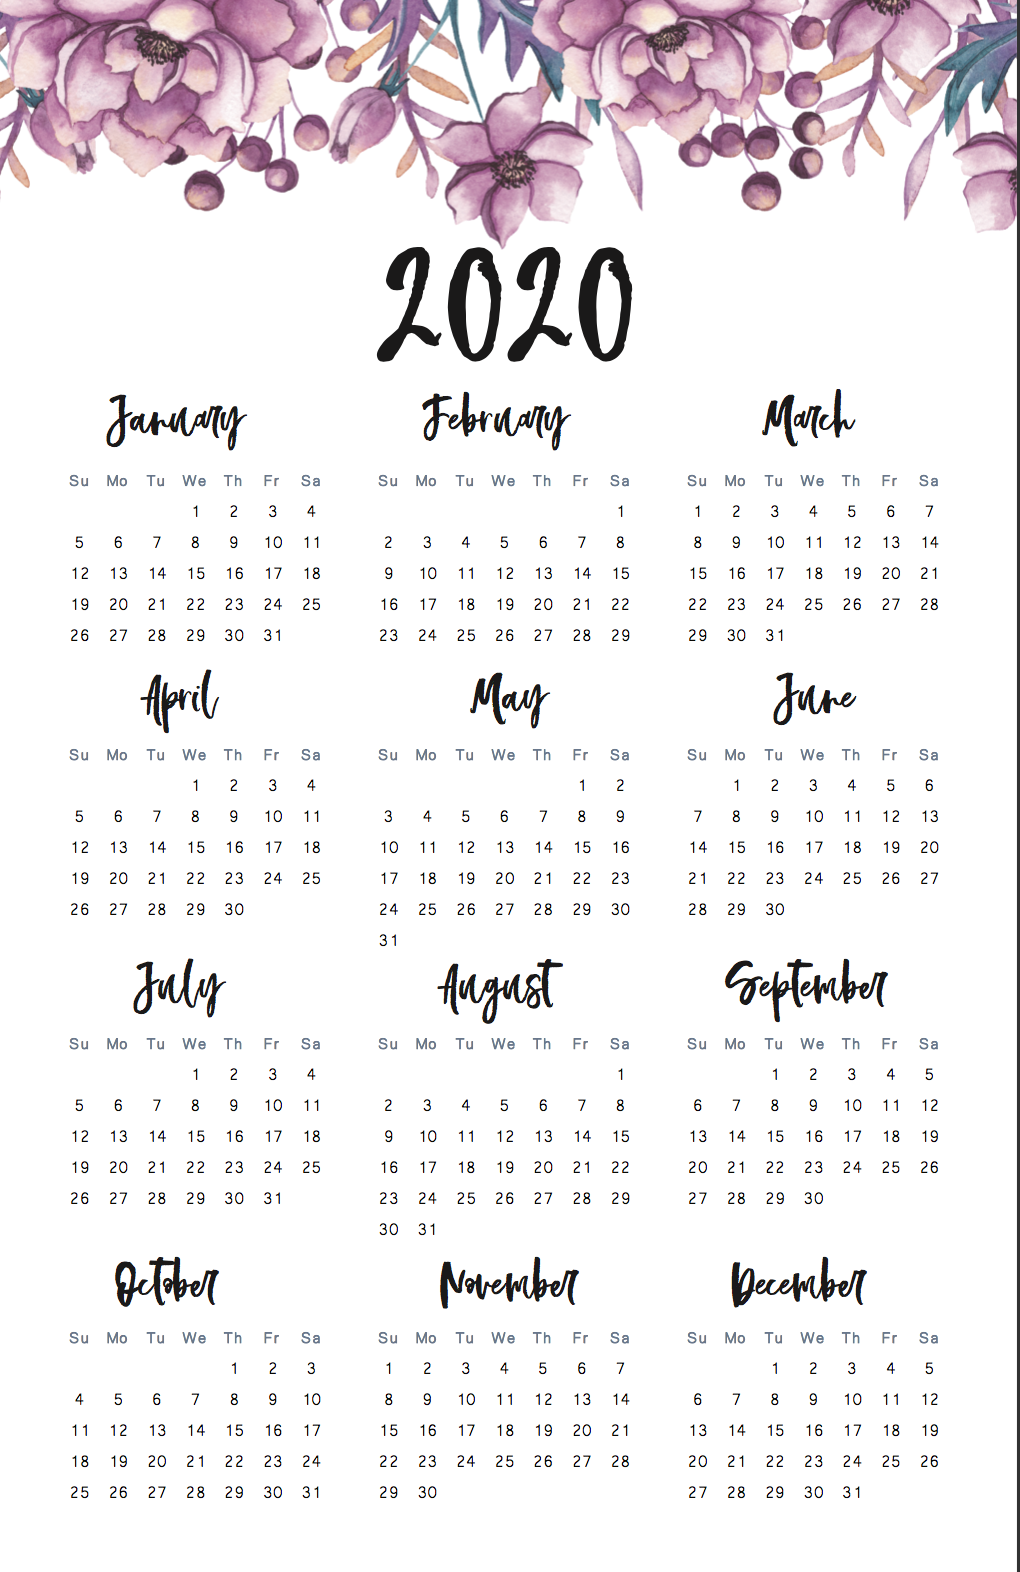 ANNUAL WALL PLANNER 2020 BIRTHDAYS HOLIDAYS SPECIAL OCCASIONS A3 A4 SIZE XMAS